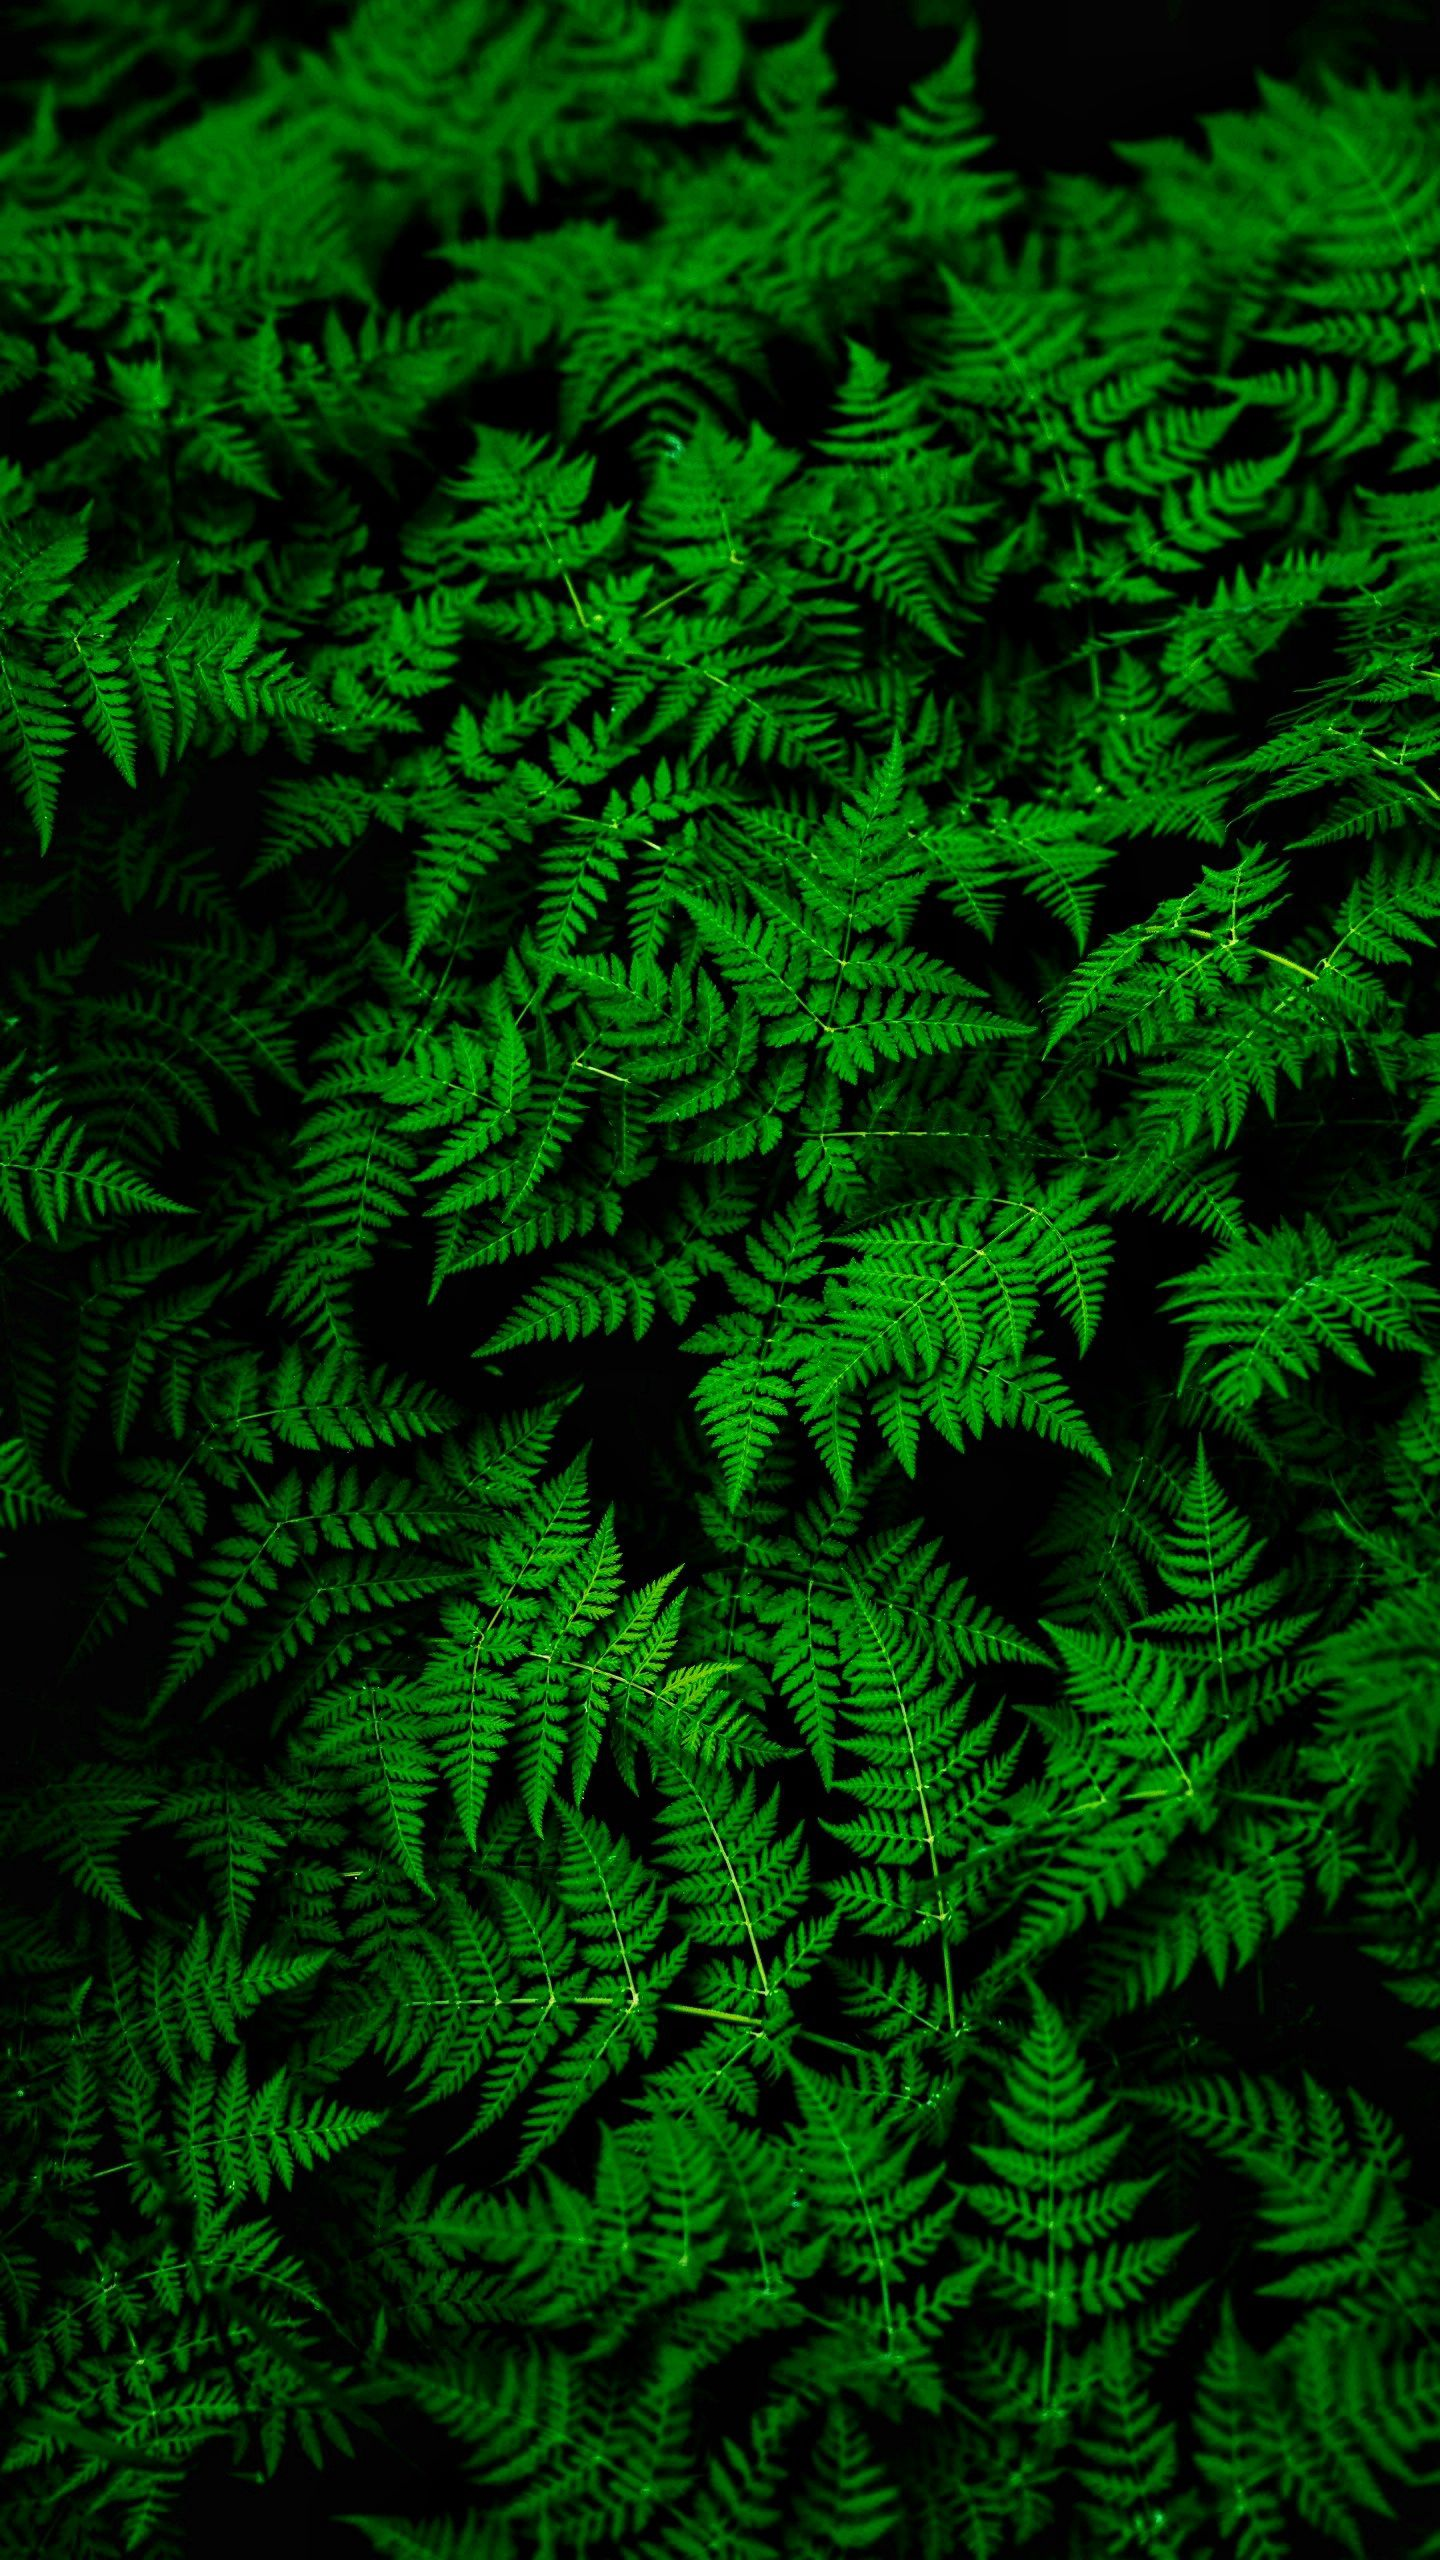 119728 download wallpaper Plant, Nature, Leaves, Fern, Thick screensavers and pictures for free